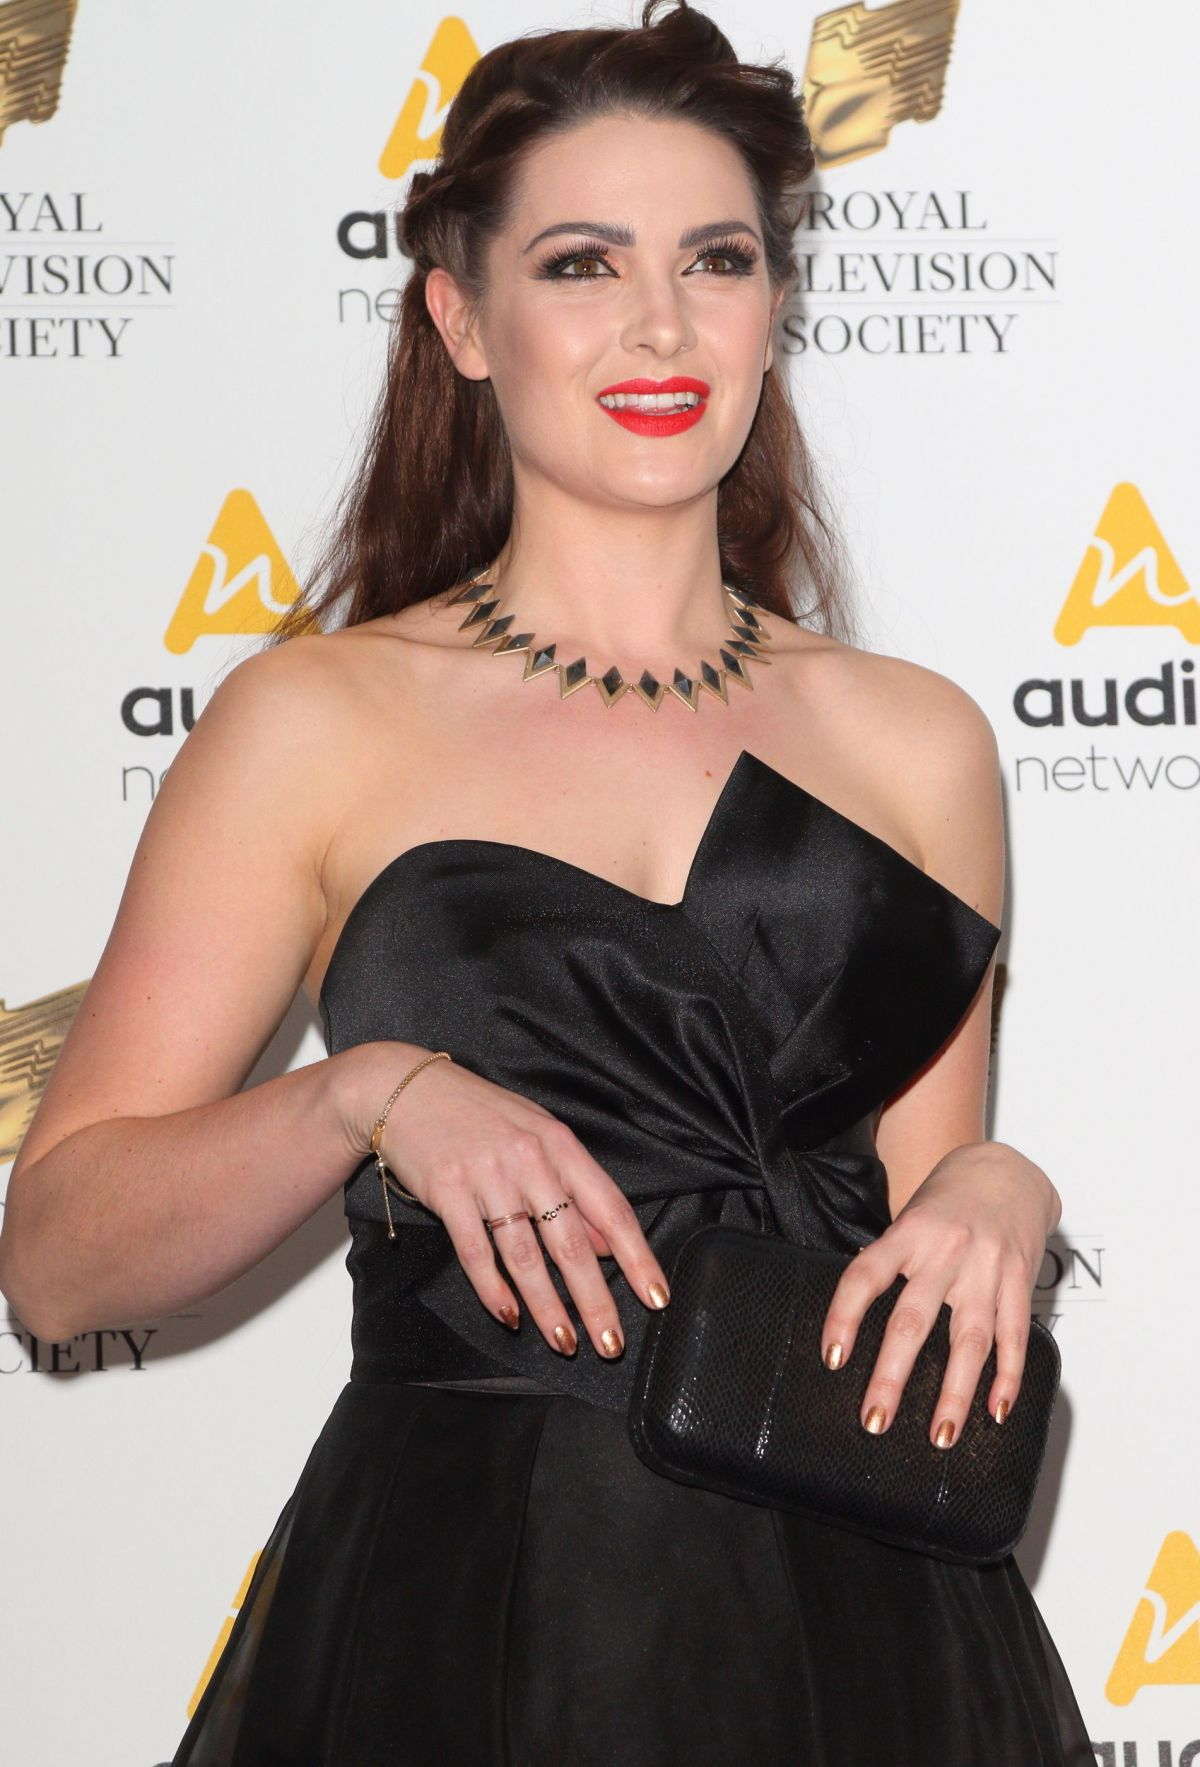 ANNA PASSEY at Royal Television Society Programme Awards 03/21/2017